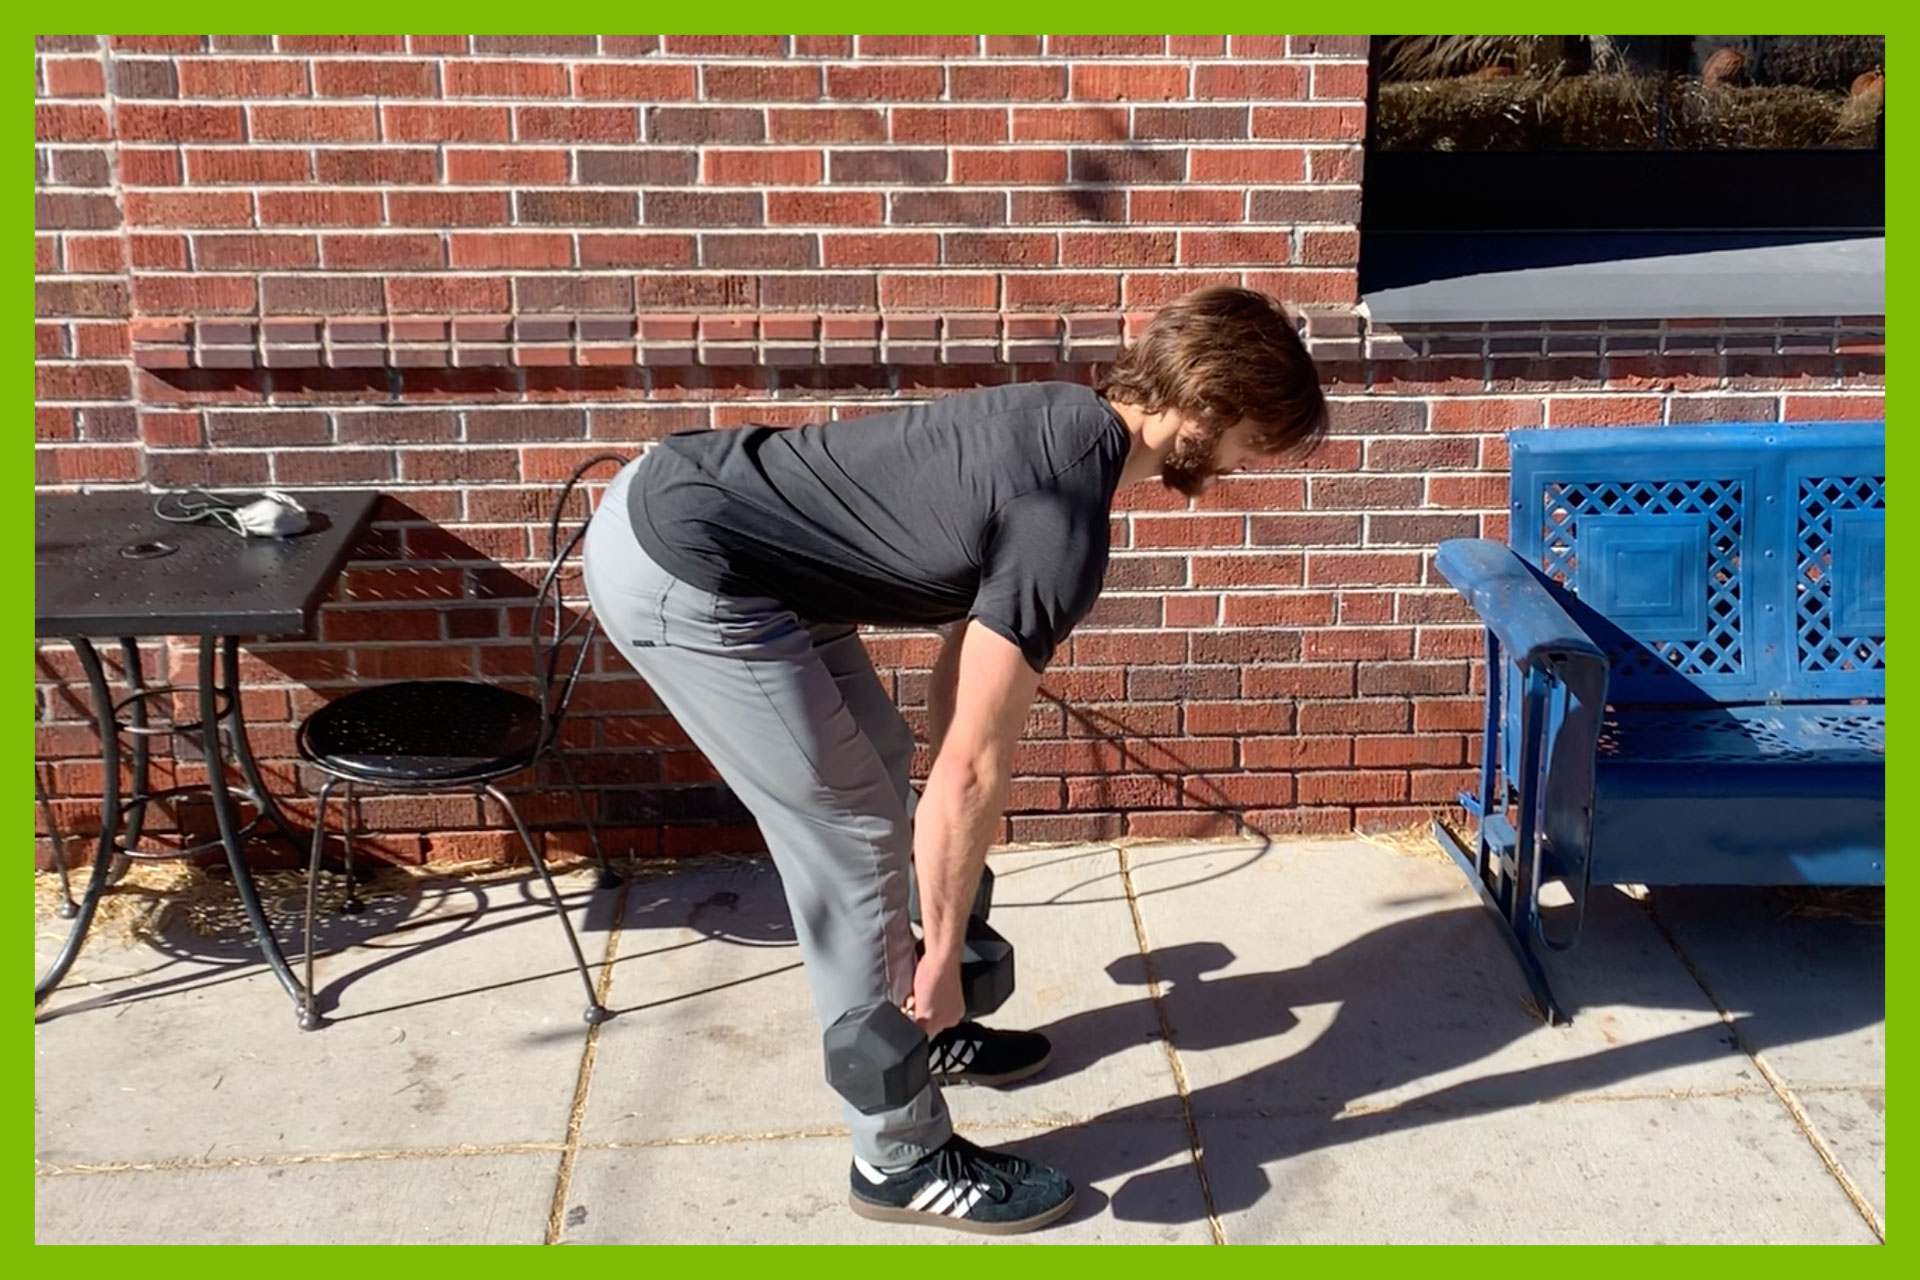 Our Trainer, Will Goodwin of LoHi Athletic Club in Denver, Colorado, gives you advice about stretching.